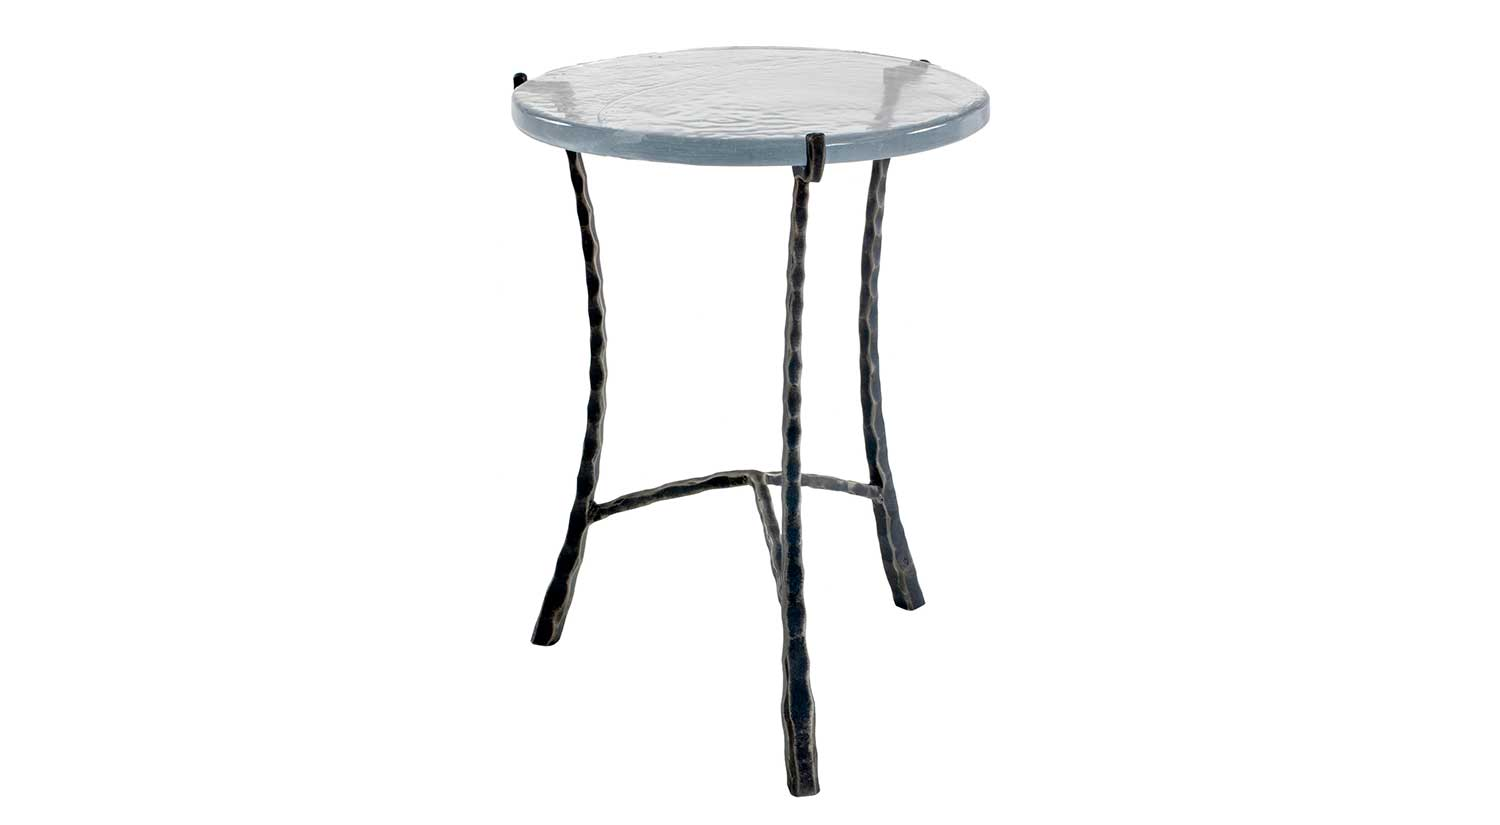 circle furniture cascade drink table accent tables blue bedside kitchen cupboards round patio tablecloths oval end with drawer expandable farmhouse tall skinny lamps target ott